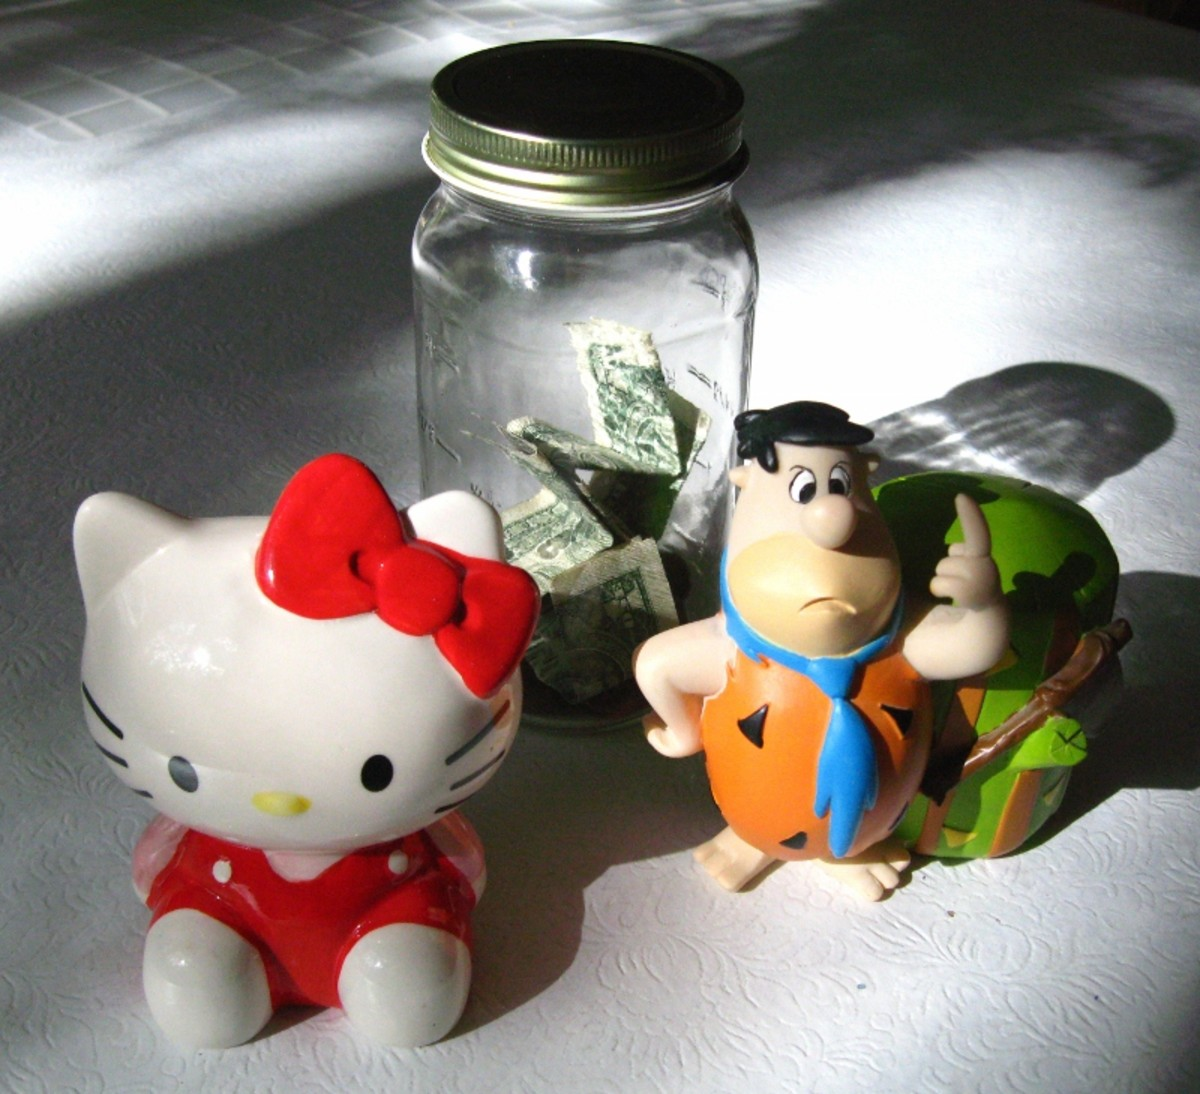 A budget can help save enough money for the things we want to buy.  - Photo: three different piggy banks.